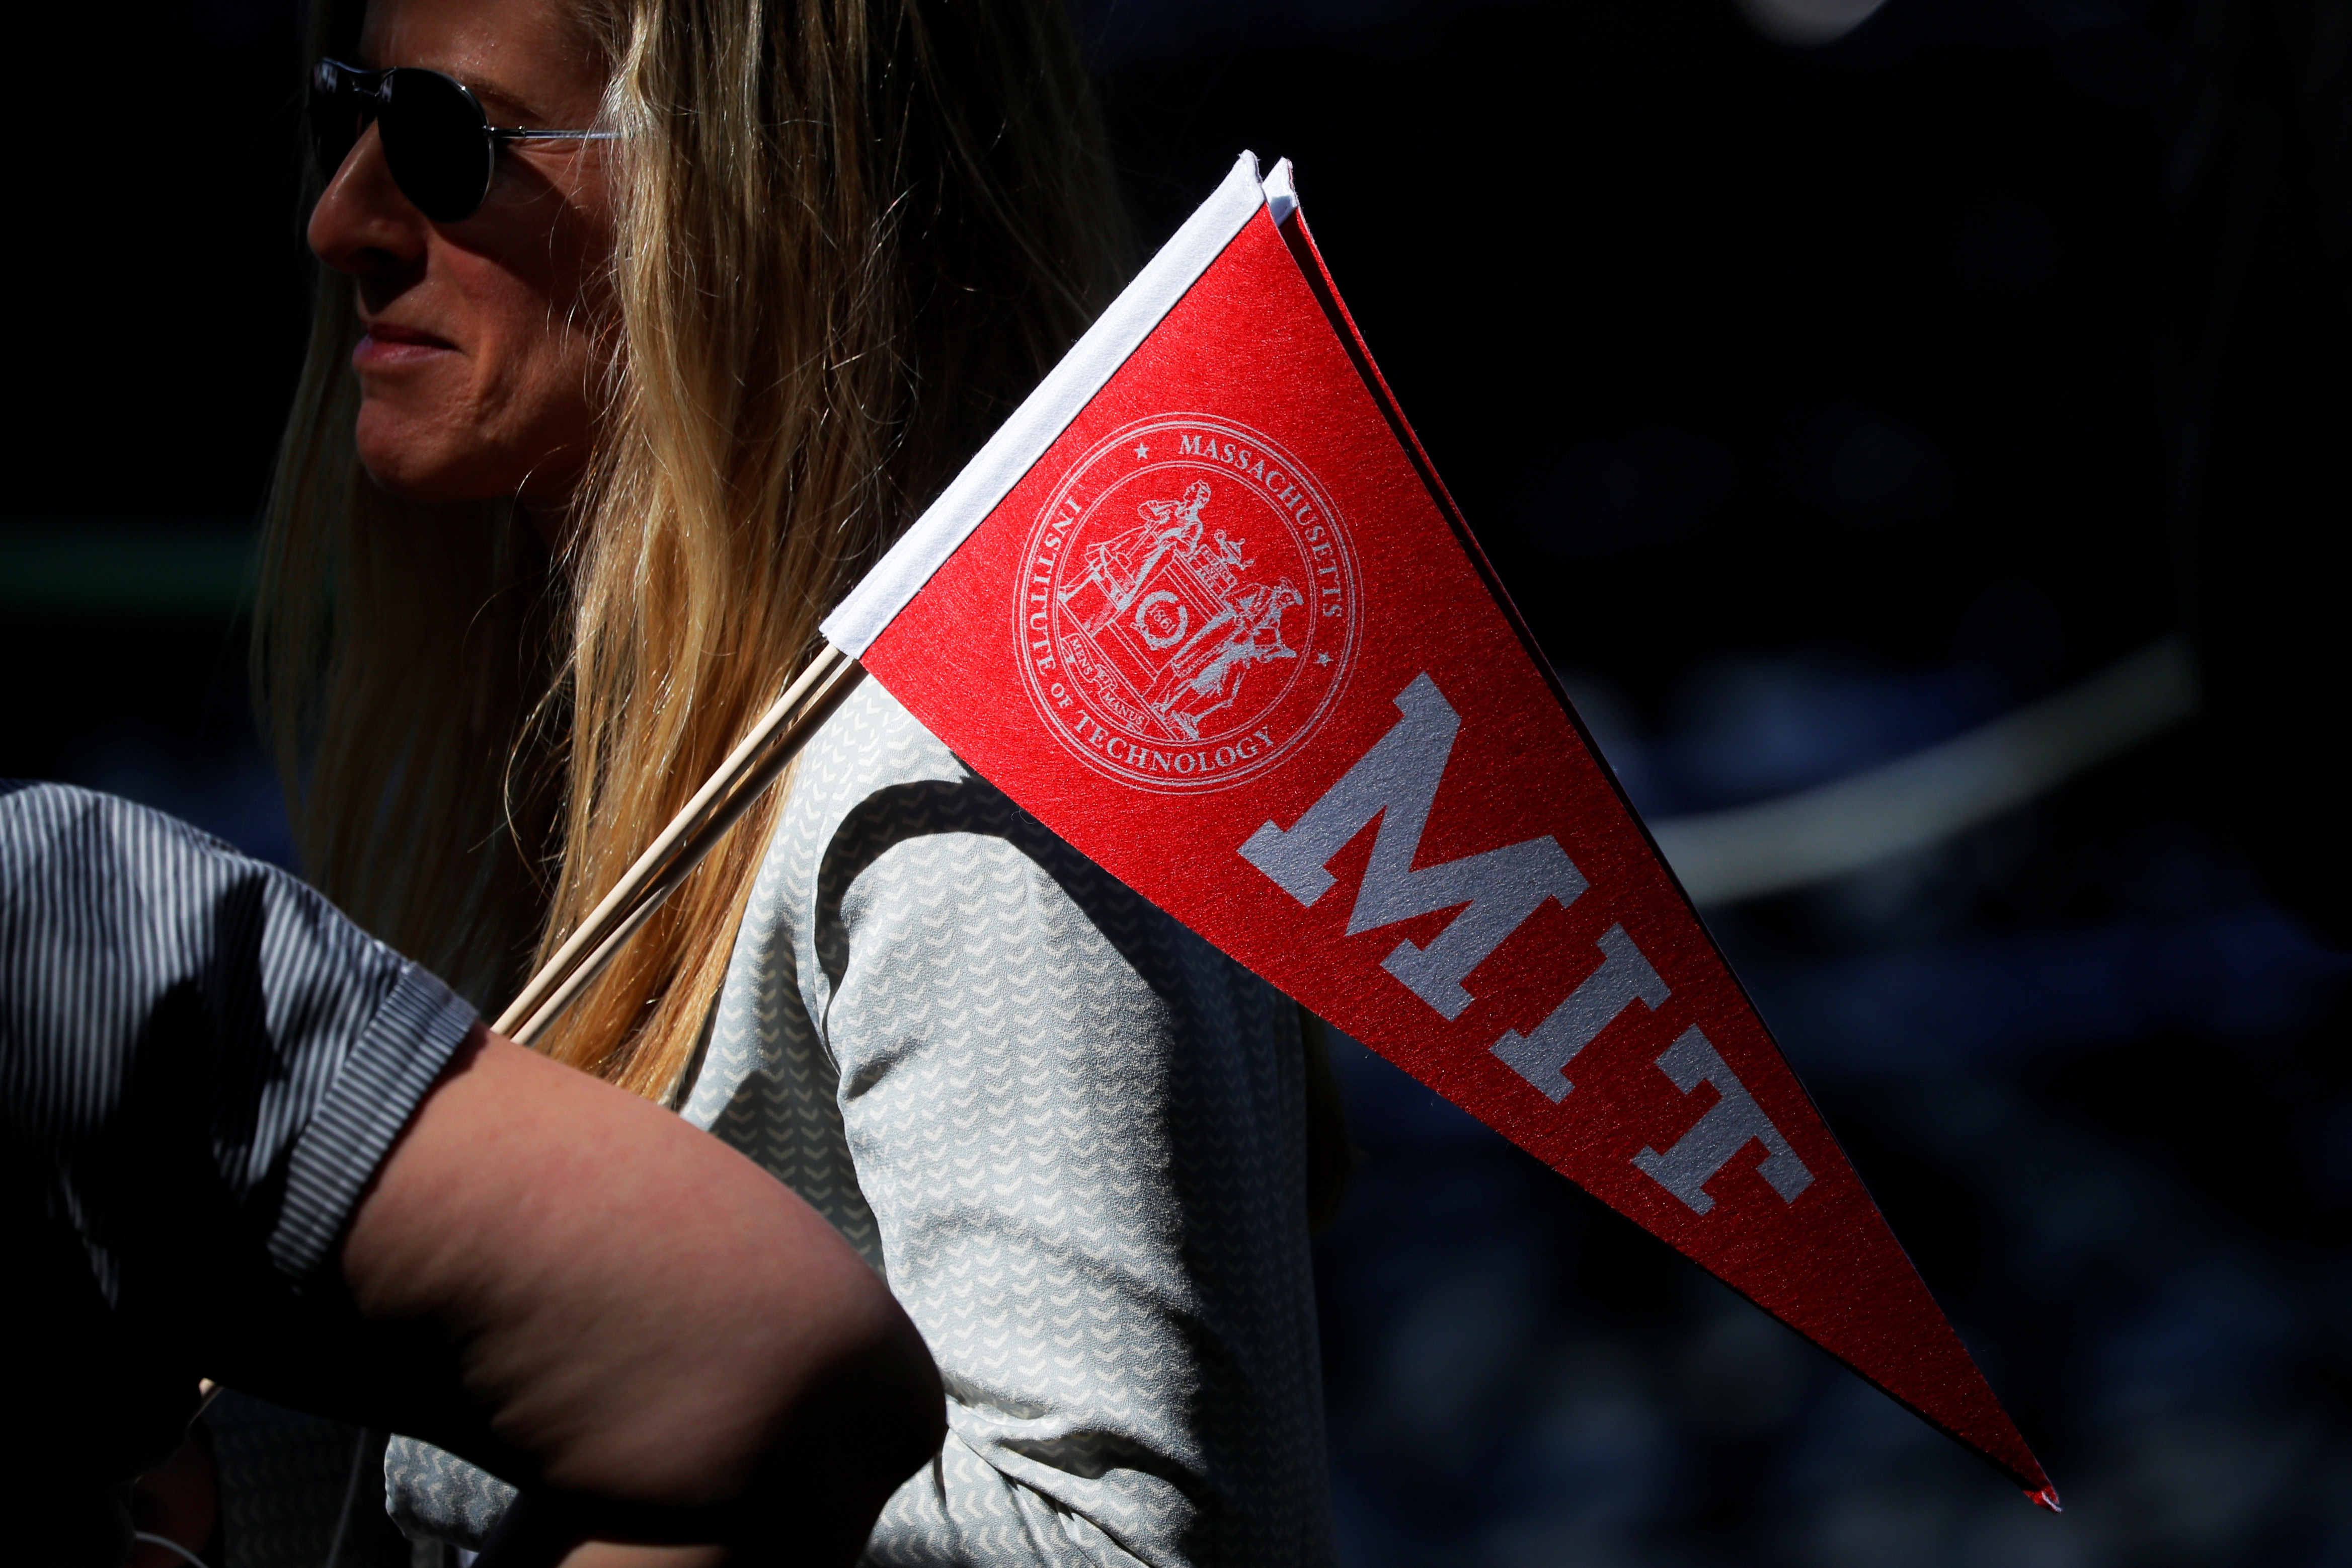 An audience member carries a school pennant before Commencement Exercises at the Massachusetts Institute of Technology (MIT) in Cambridge, Massachusetts, U.S., June 7, 2019. REUTERS/Brian Snyder - RC18F15B8A70